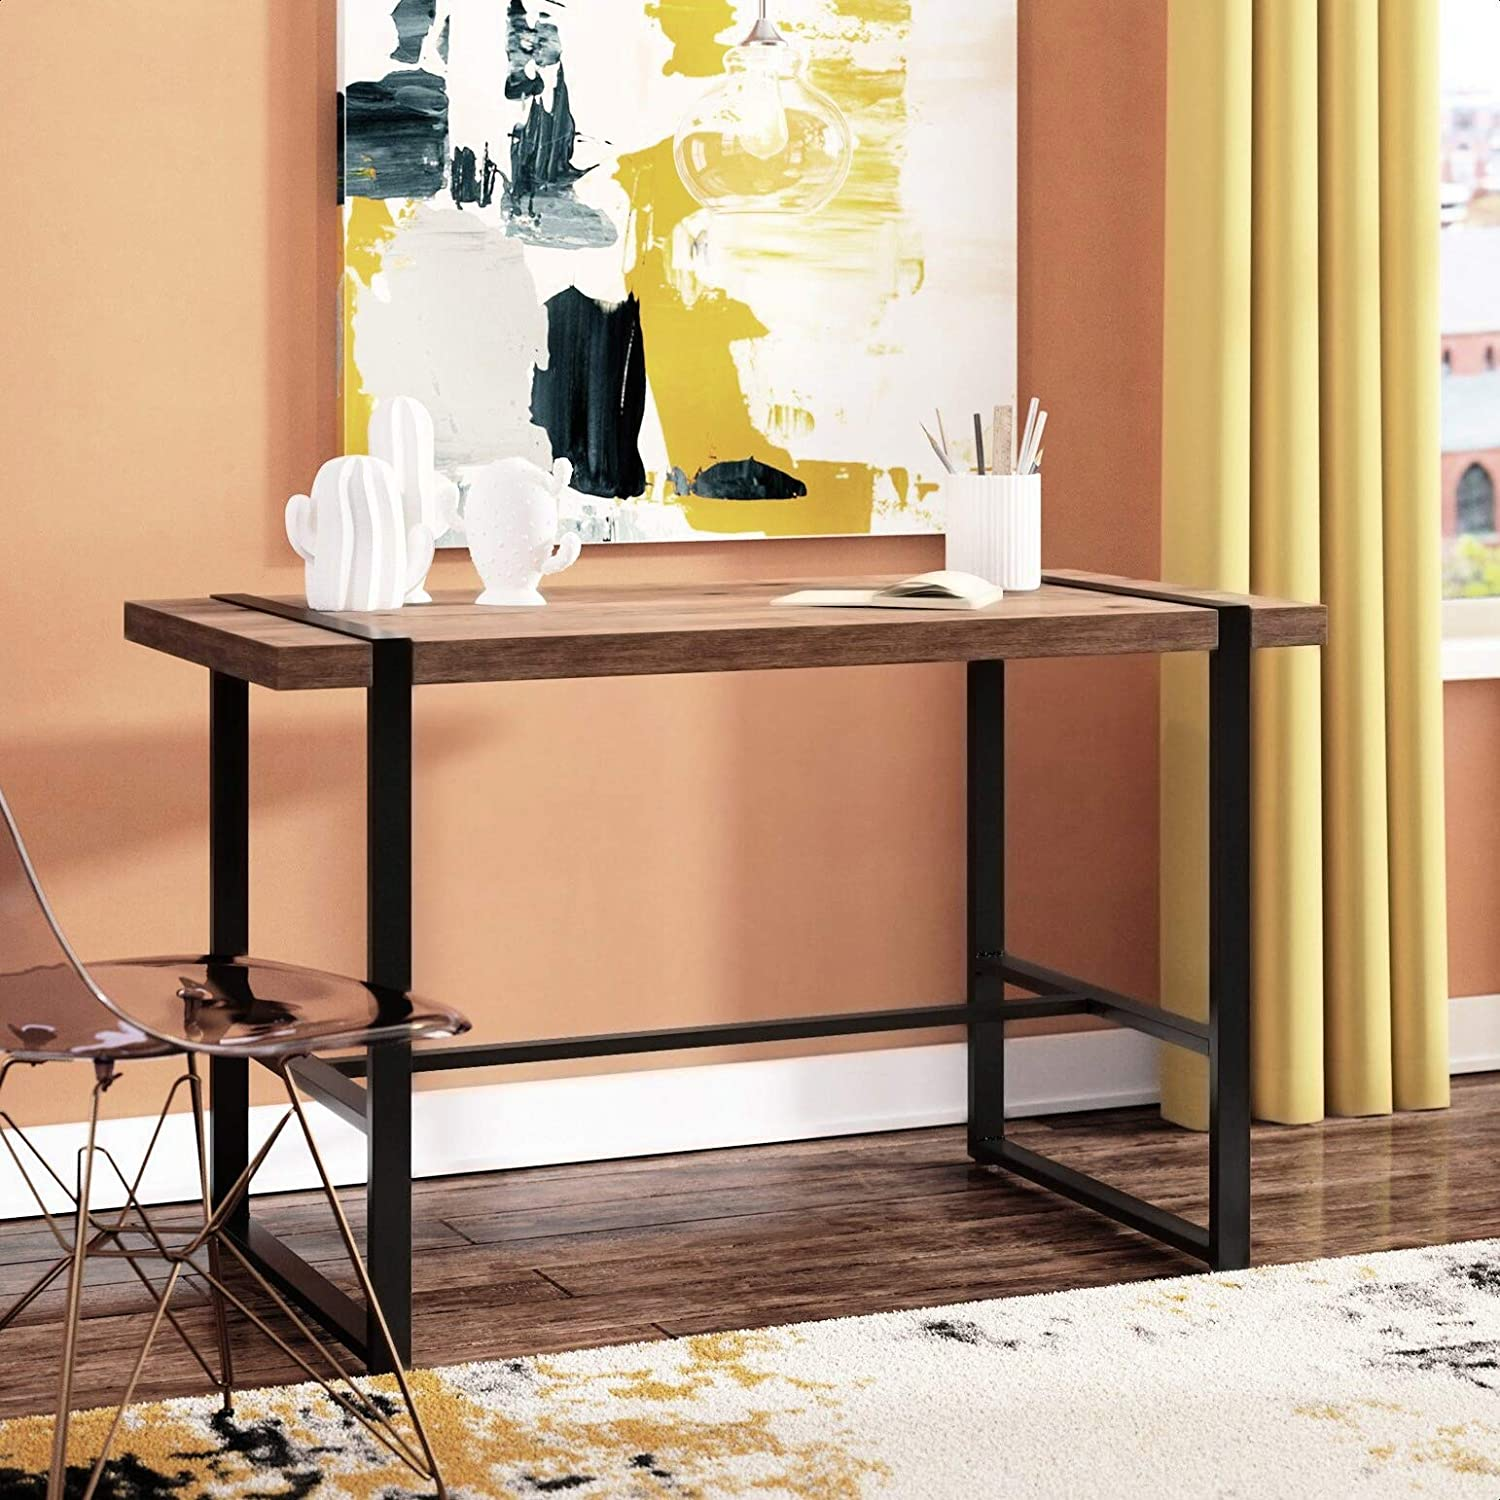 Department store Bovina Credenza Sale SALE% OFF Desk Commercial Use: Yes 47. x Overall: H 29''